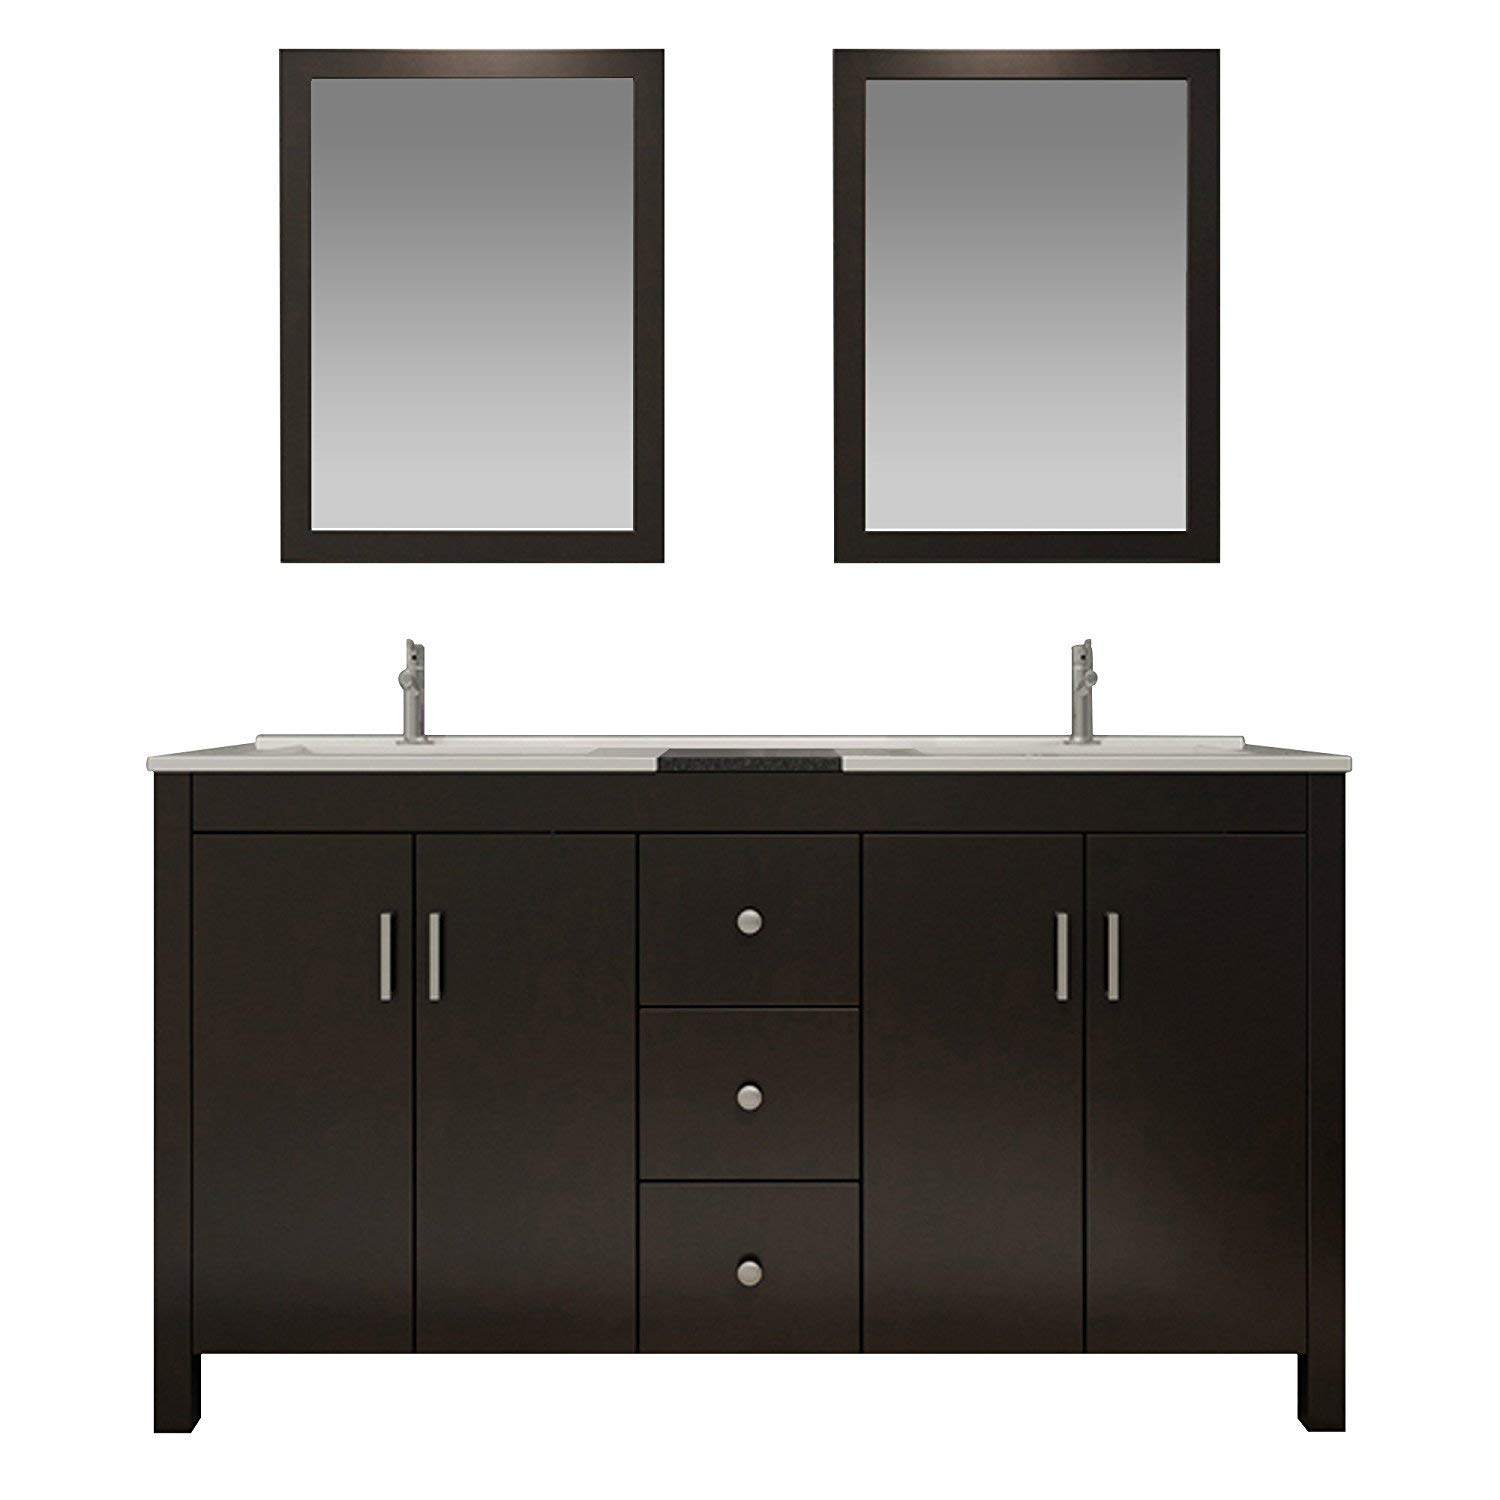 ARIEL 72 Inch Double Sink Bathroom Vanity Set In Espresso